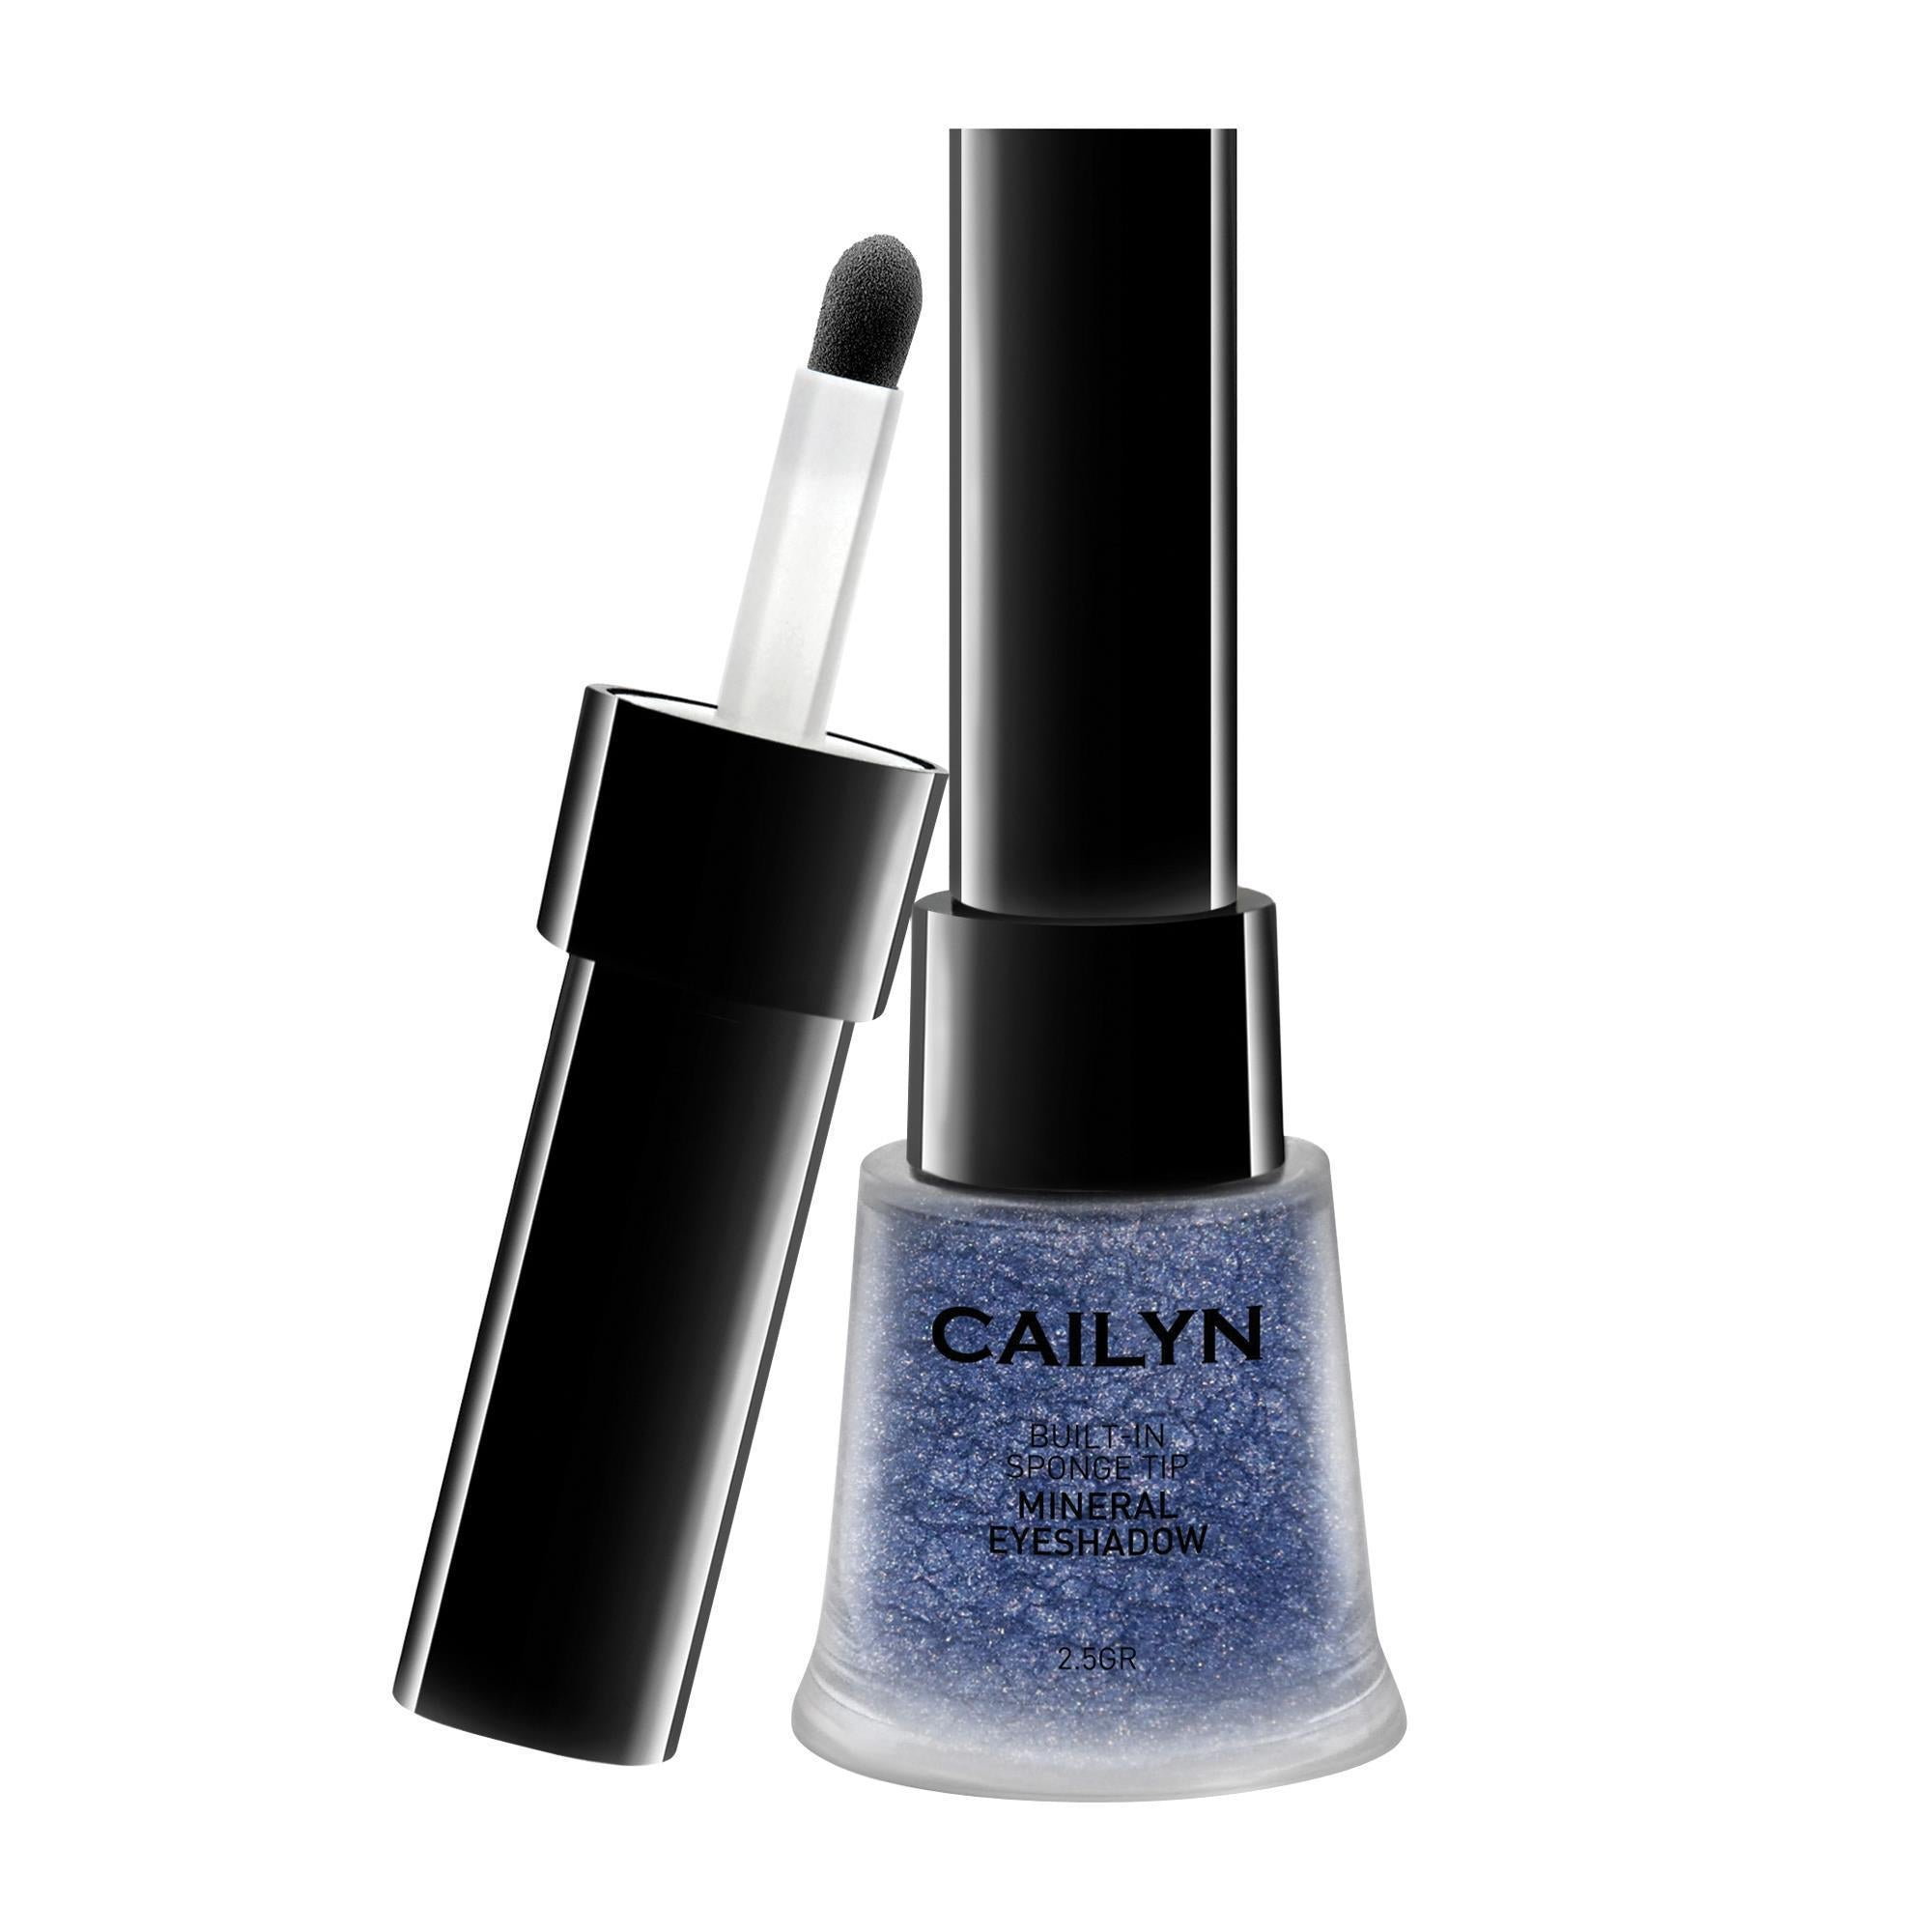 Makeup, Skin & Personal Care Naval Cailyn Mineral Eye Polish / Built-In Sponge Tip